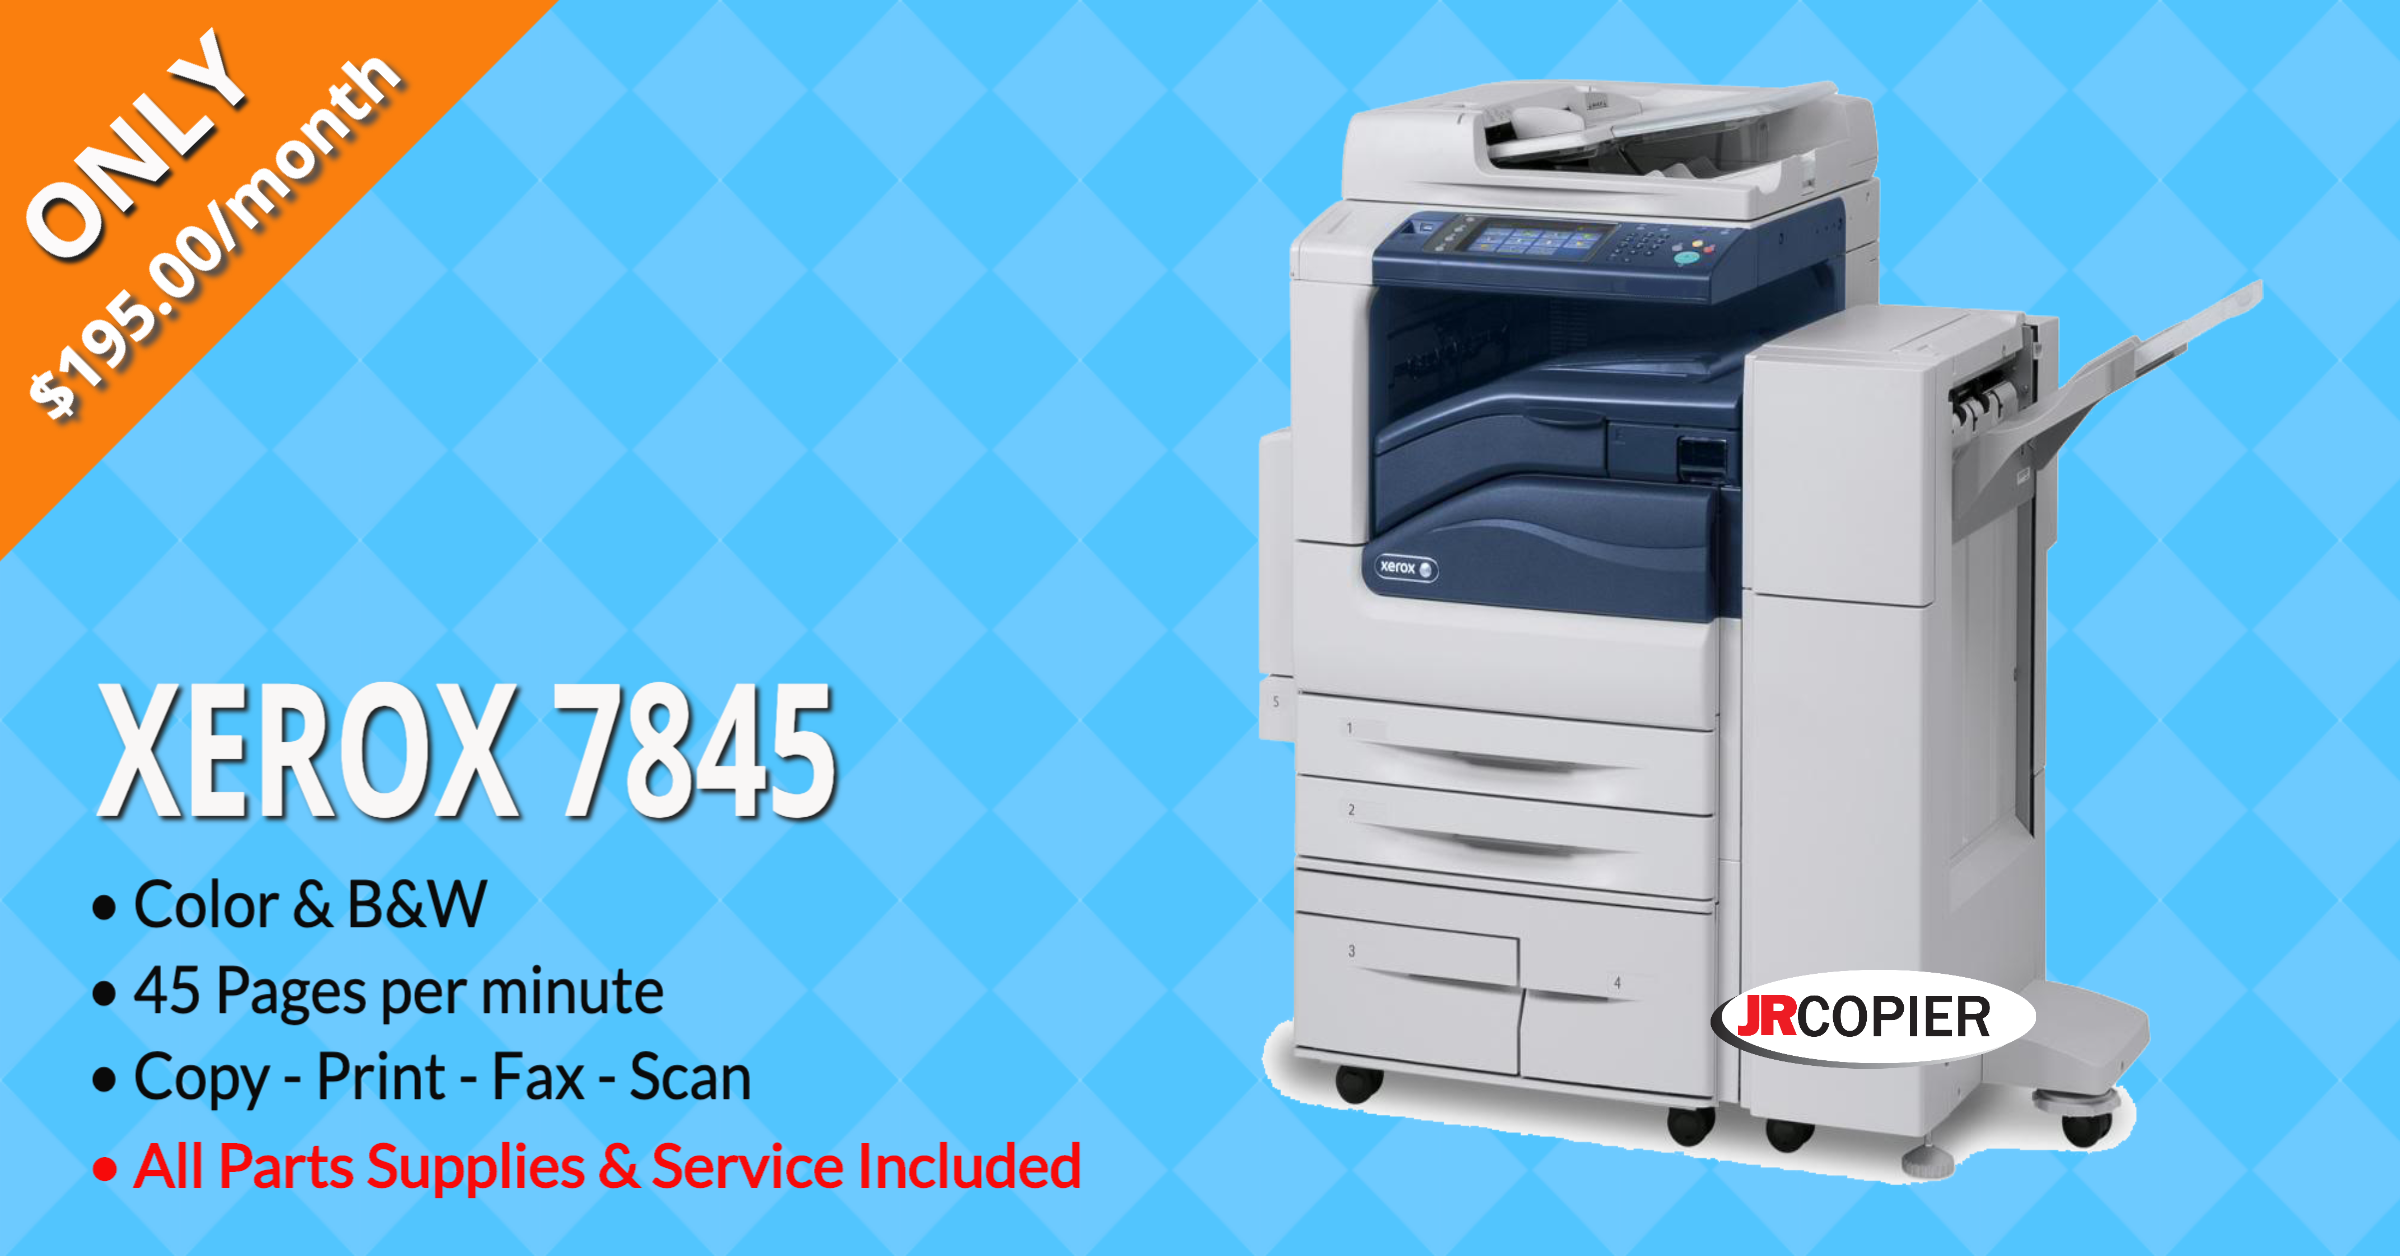 Copy Machine Sales 30719, 30720, 30721, 30722, 30740